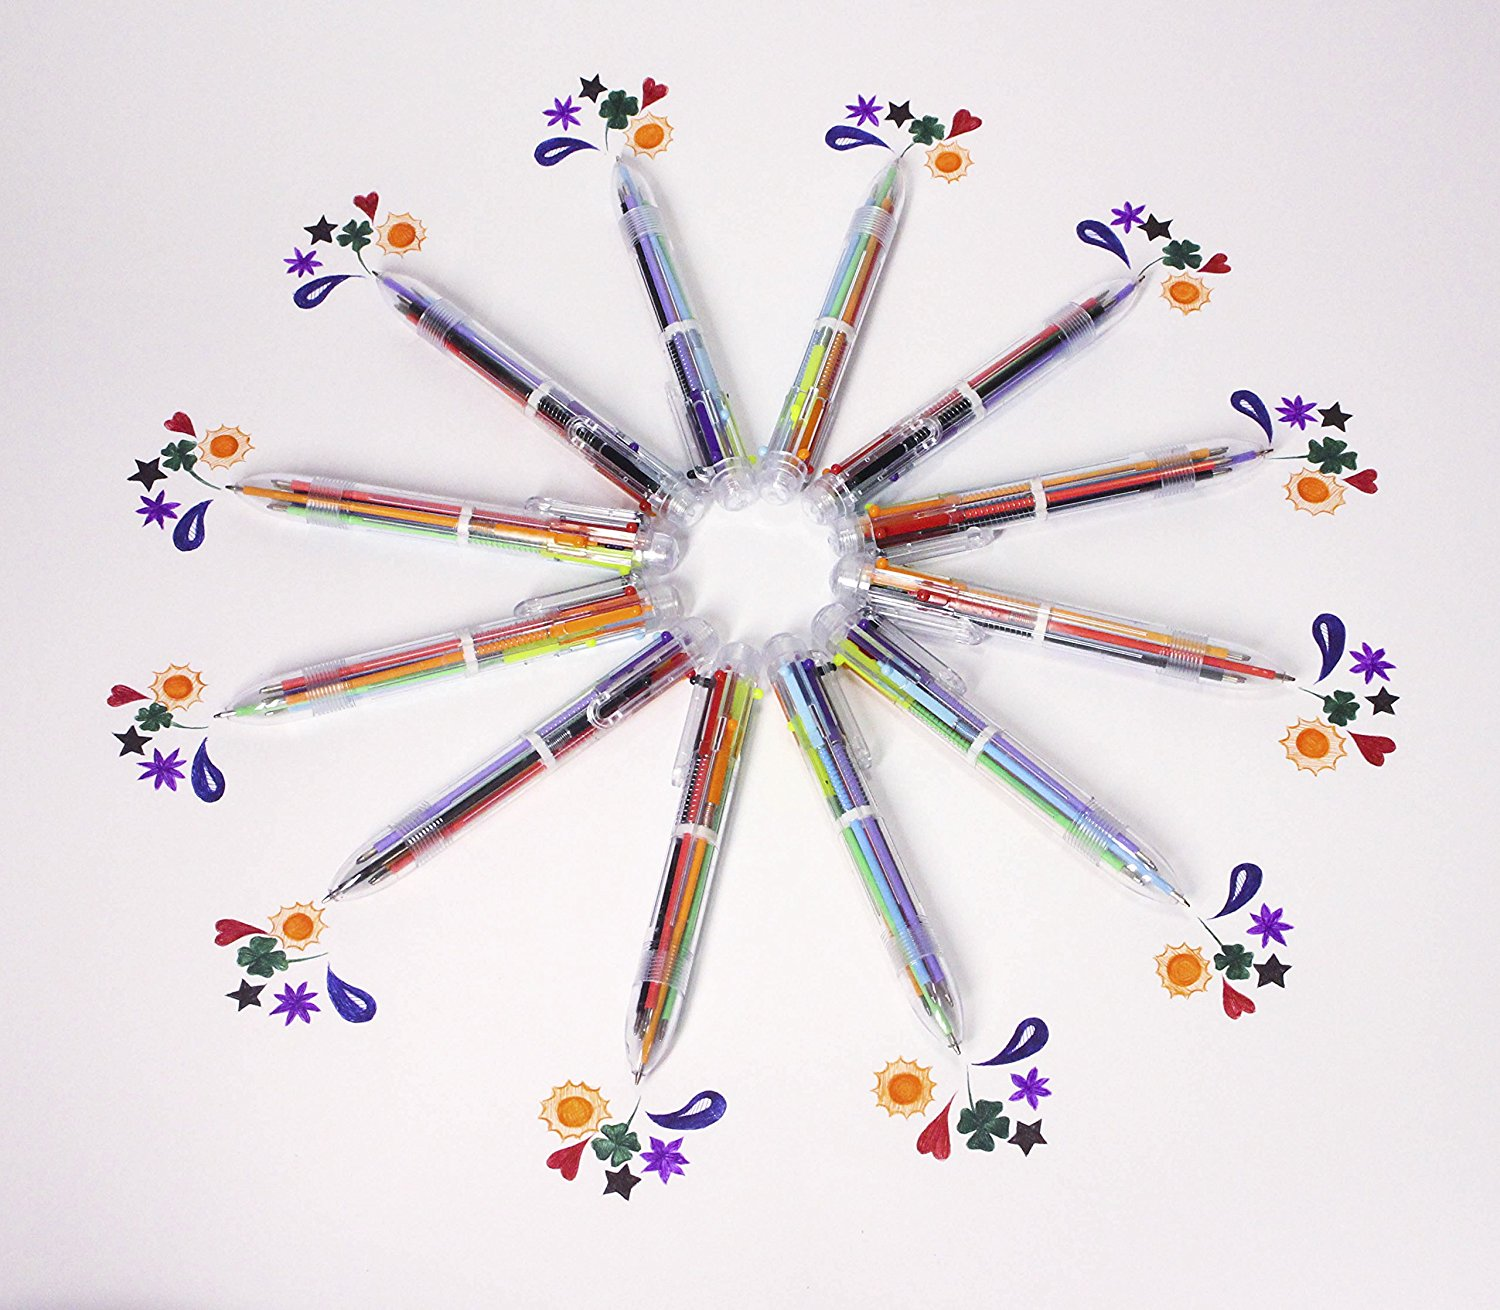 Multicolor pens: 12 Pack of 6-in-1 Retractable Ballpoint Pens + E-book - 6 Vivid Colors in Every Pen - Best for Effective Learning